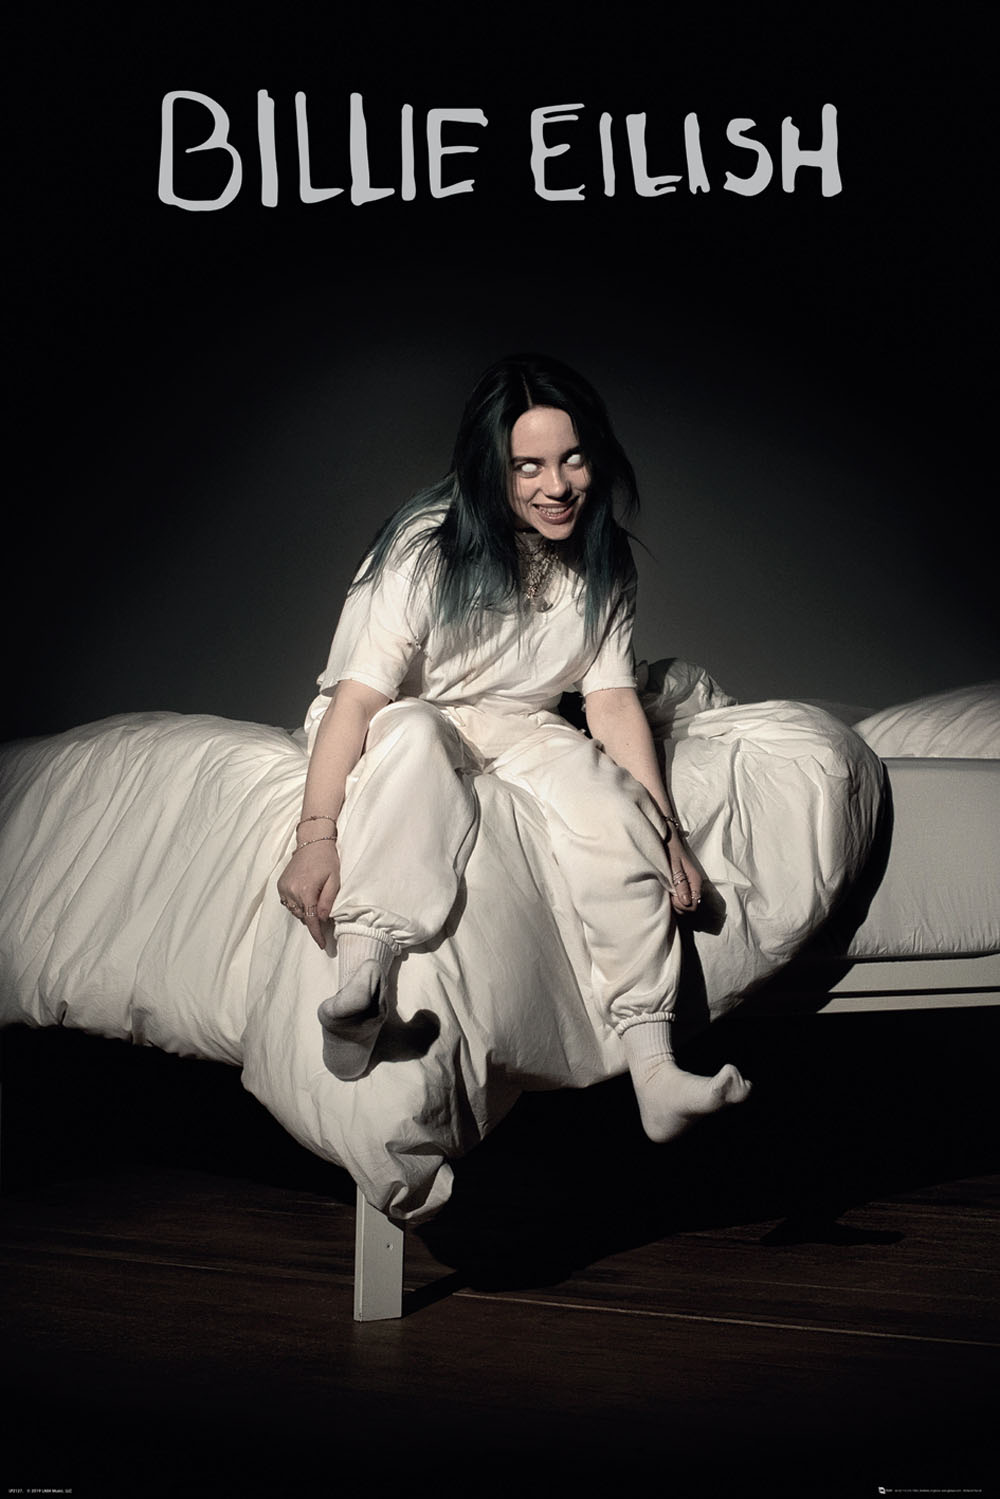 lp2127-billie-eilish-bed_copy_1570110948.jpg